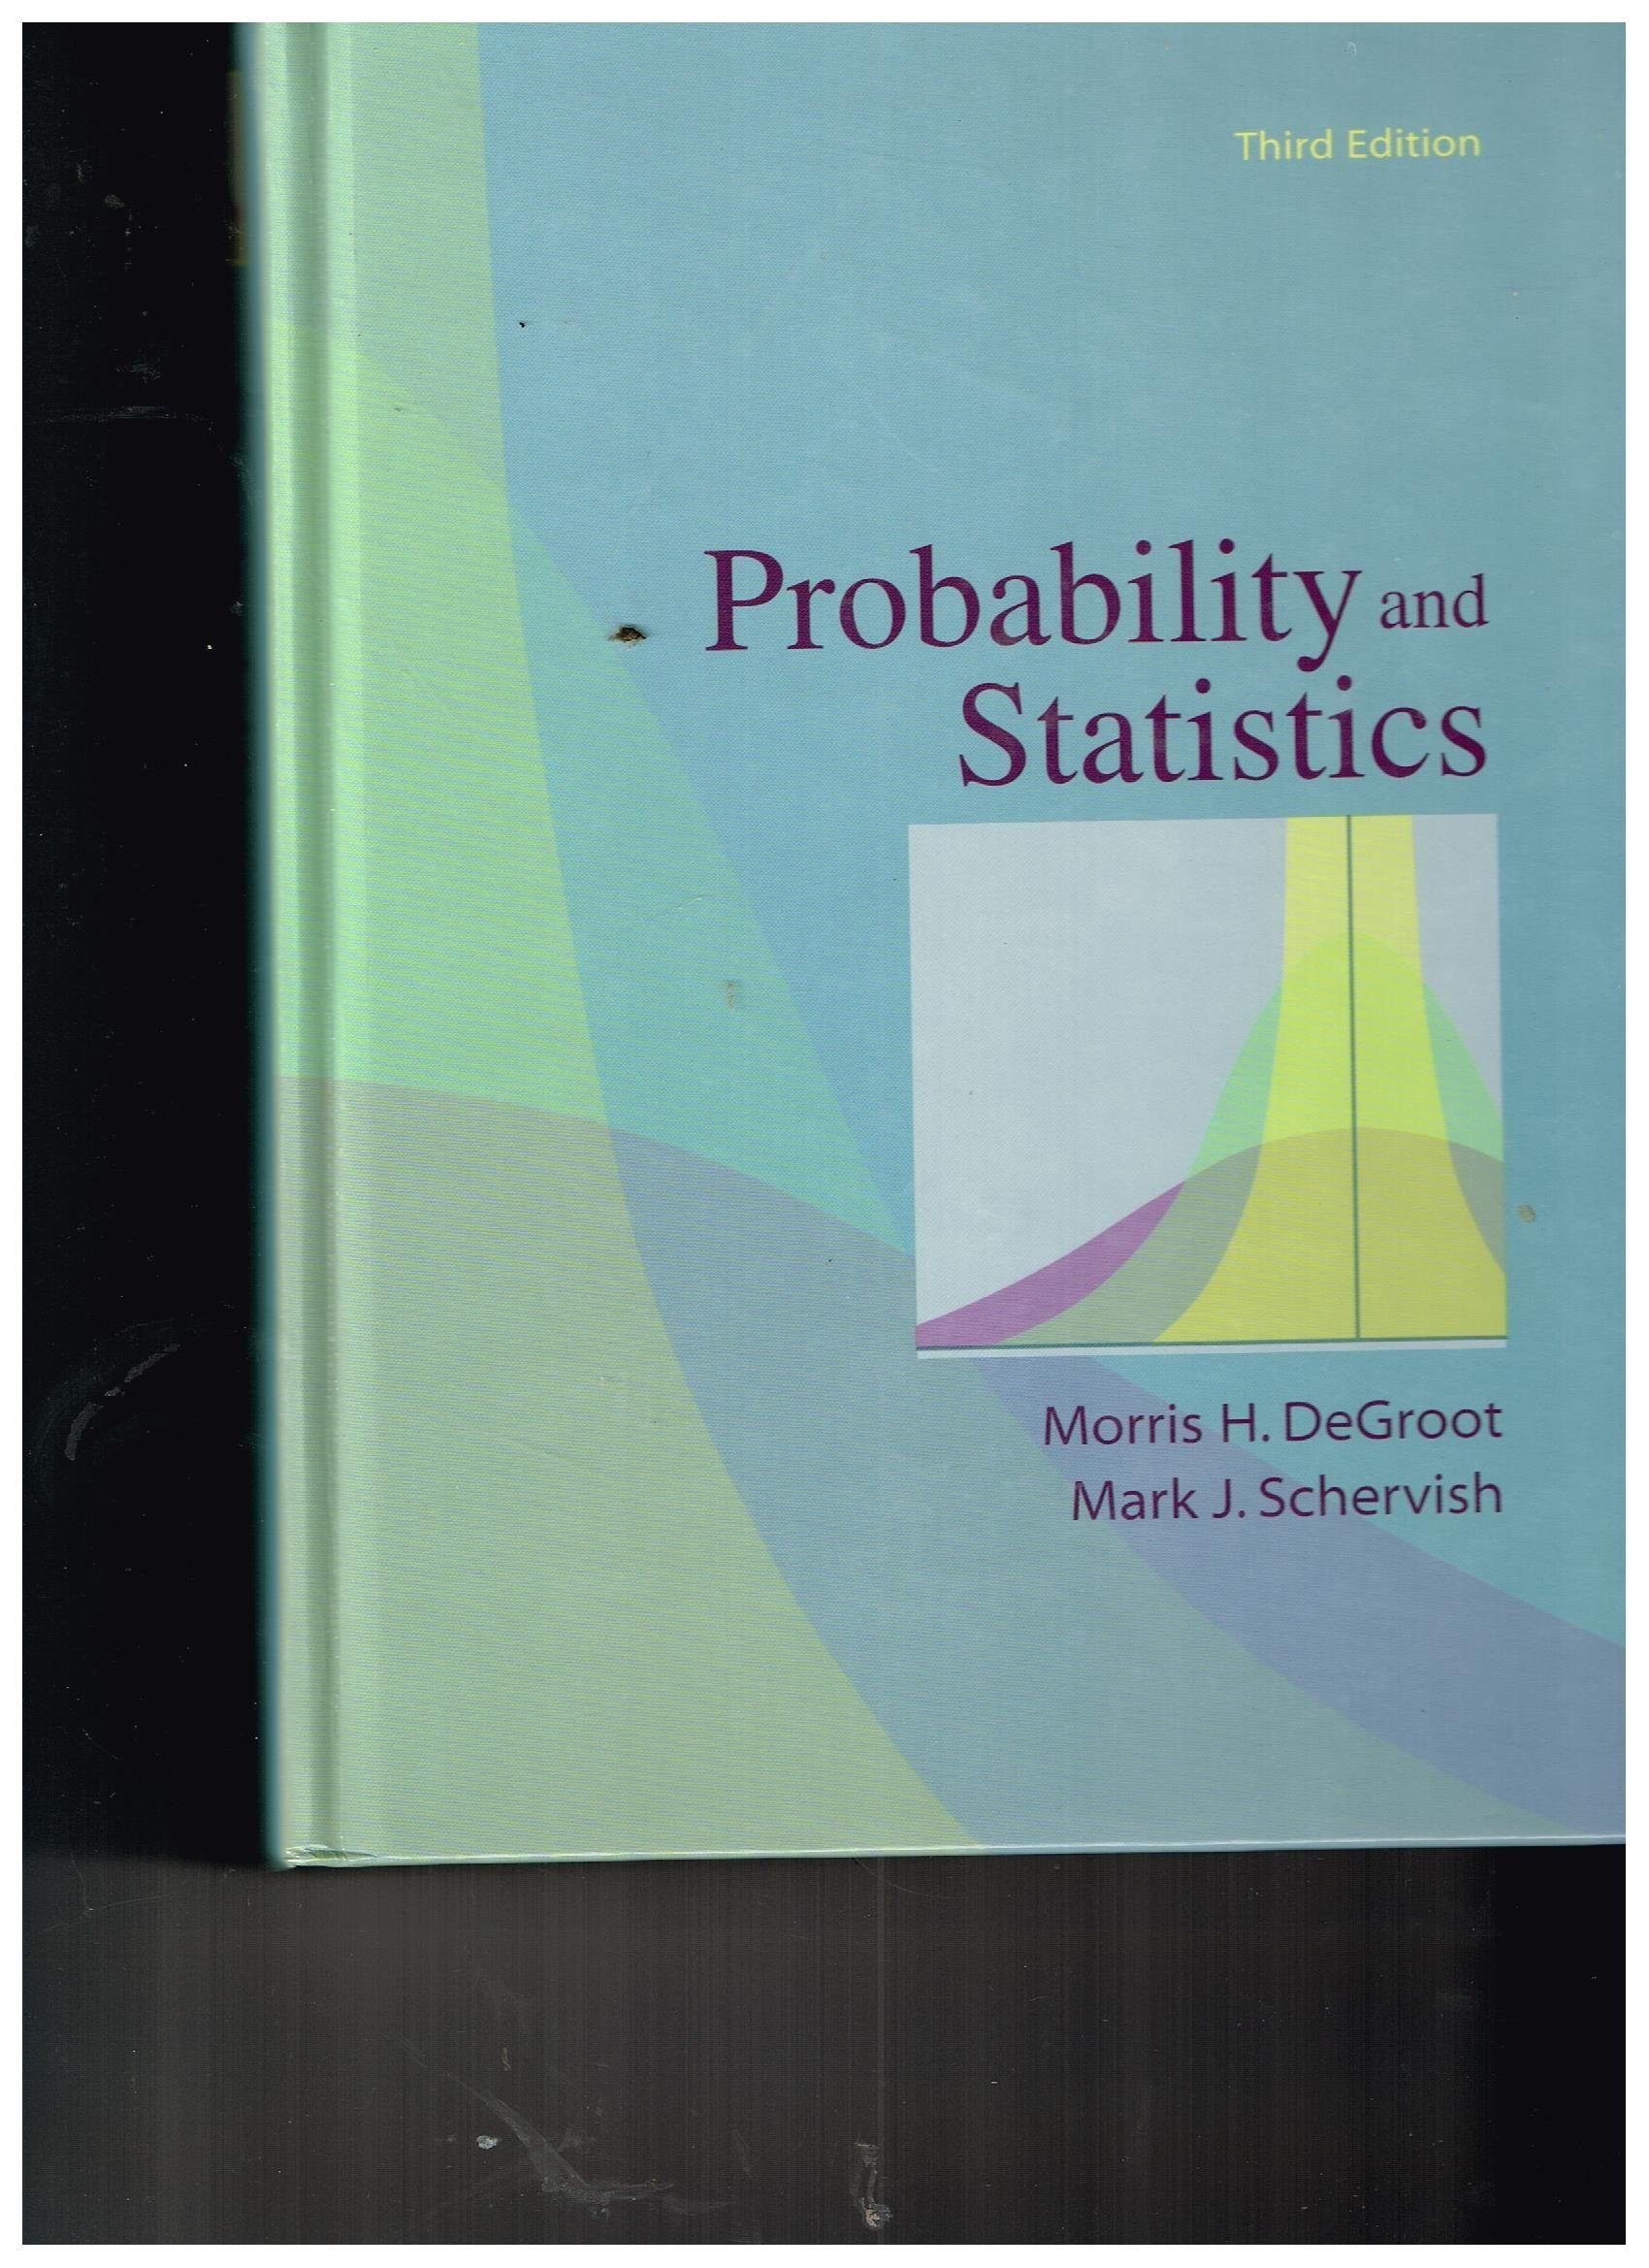 Probability And Statistics Third Edition 2002 ISBN